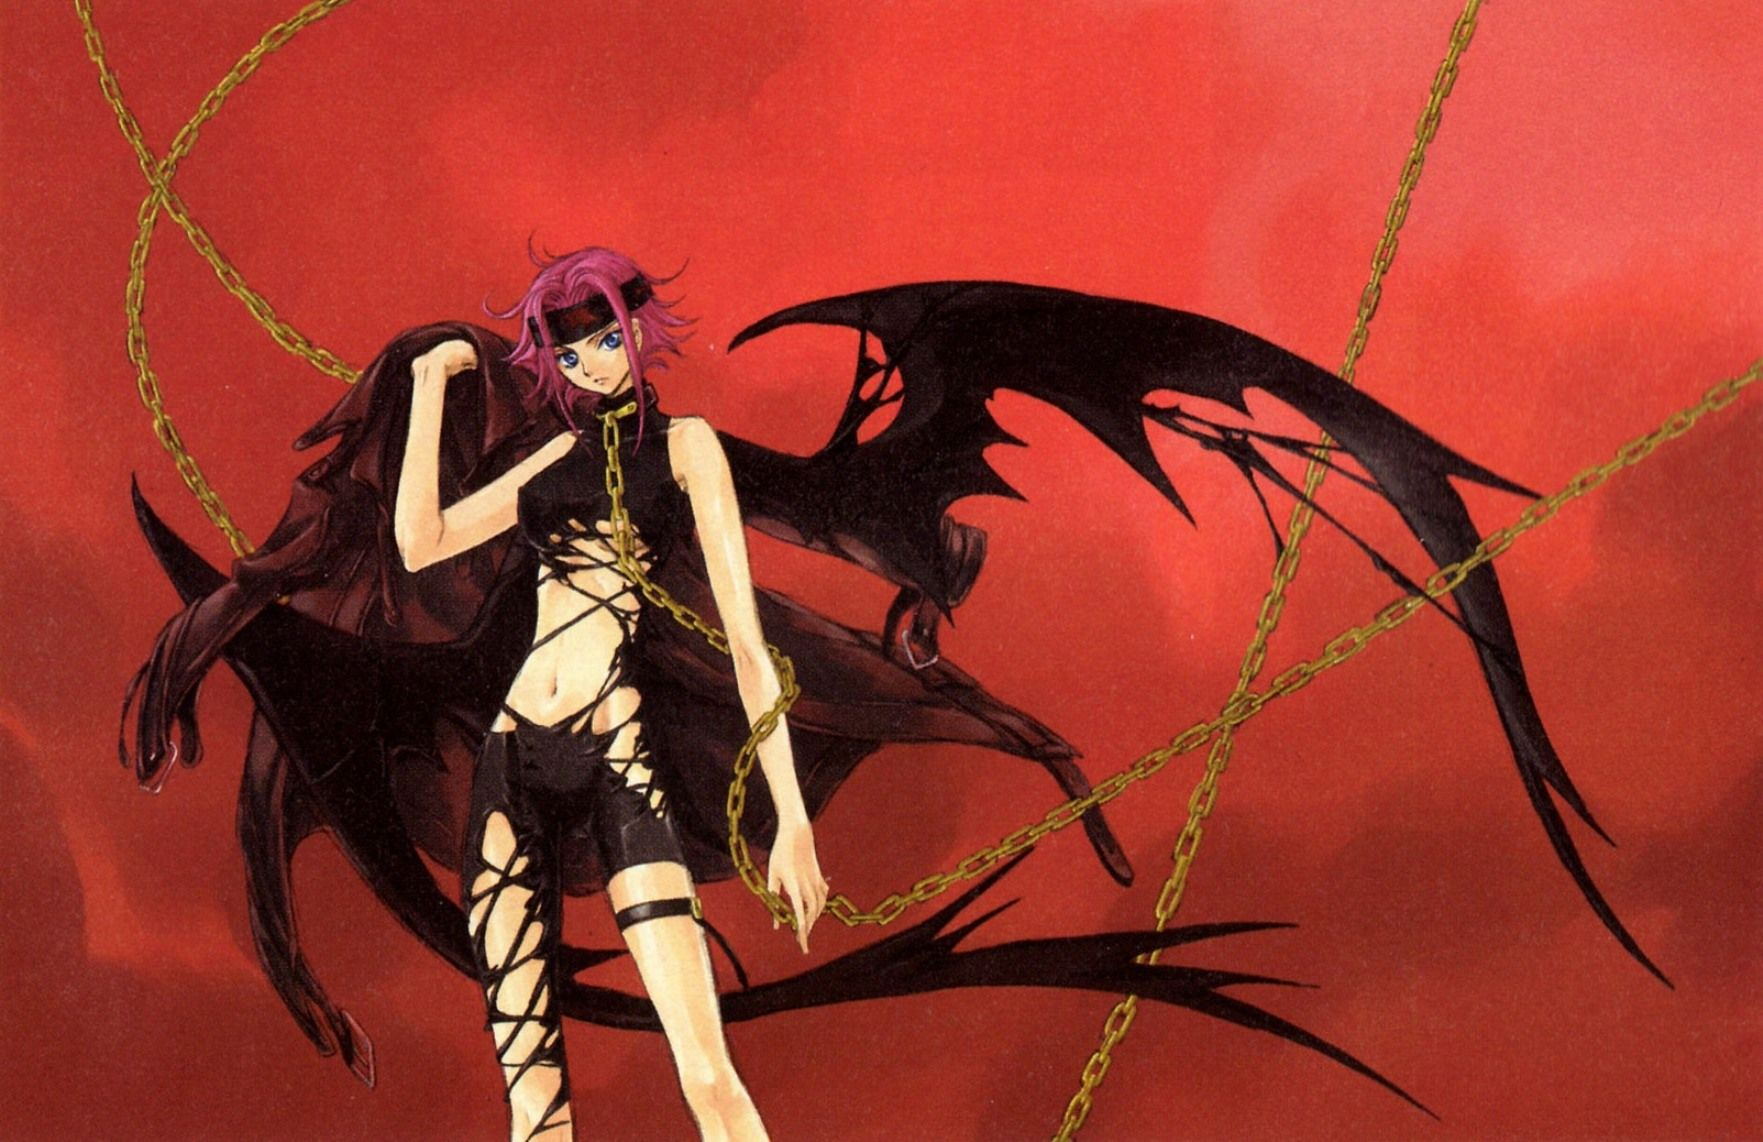 A chained fate。 Anime, Code geass, Anime network